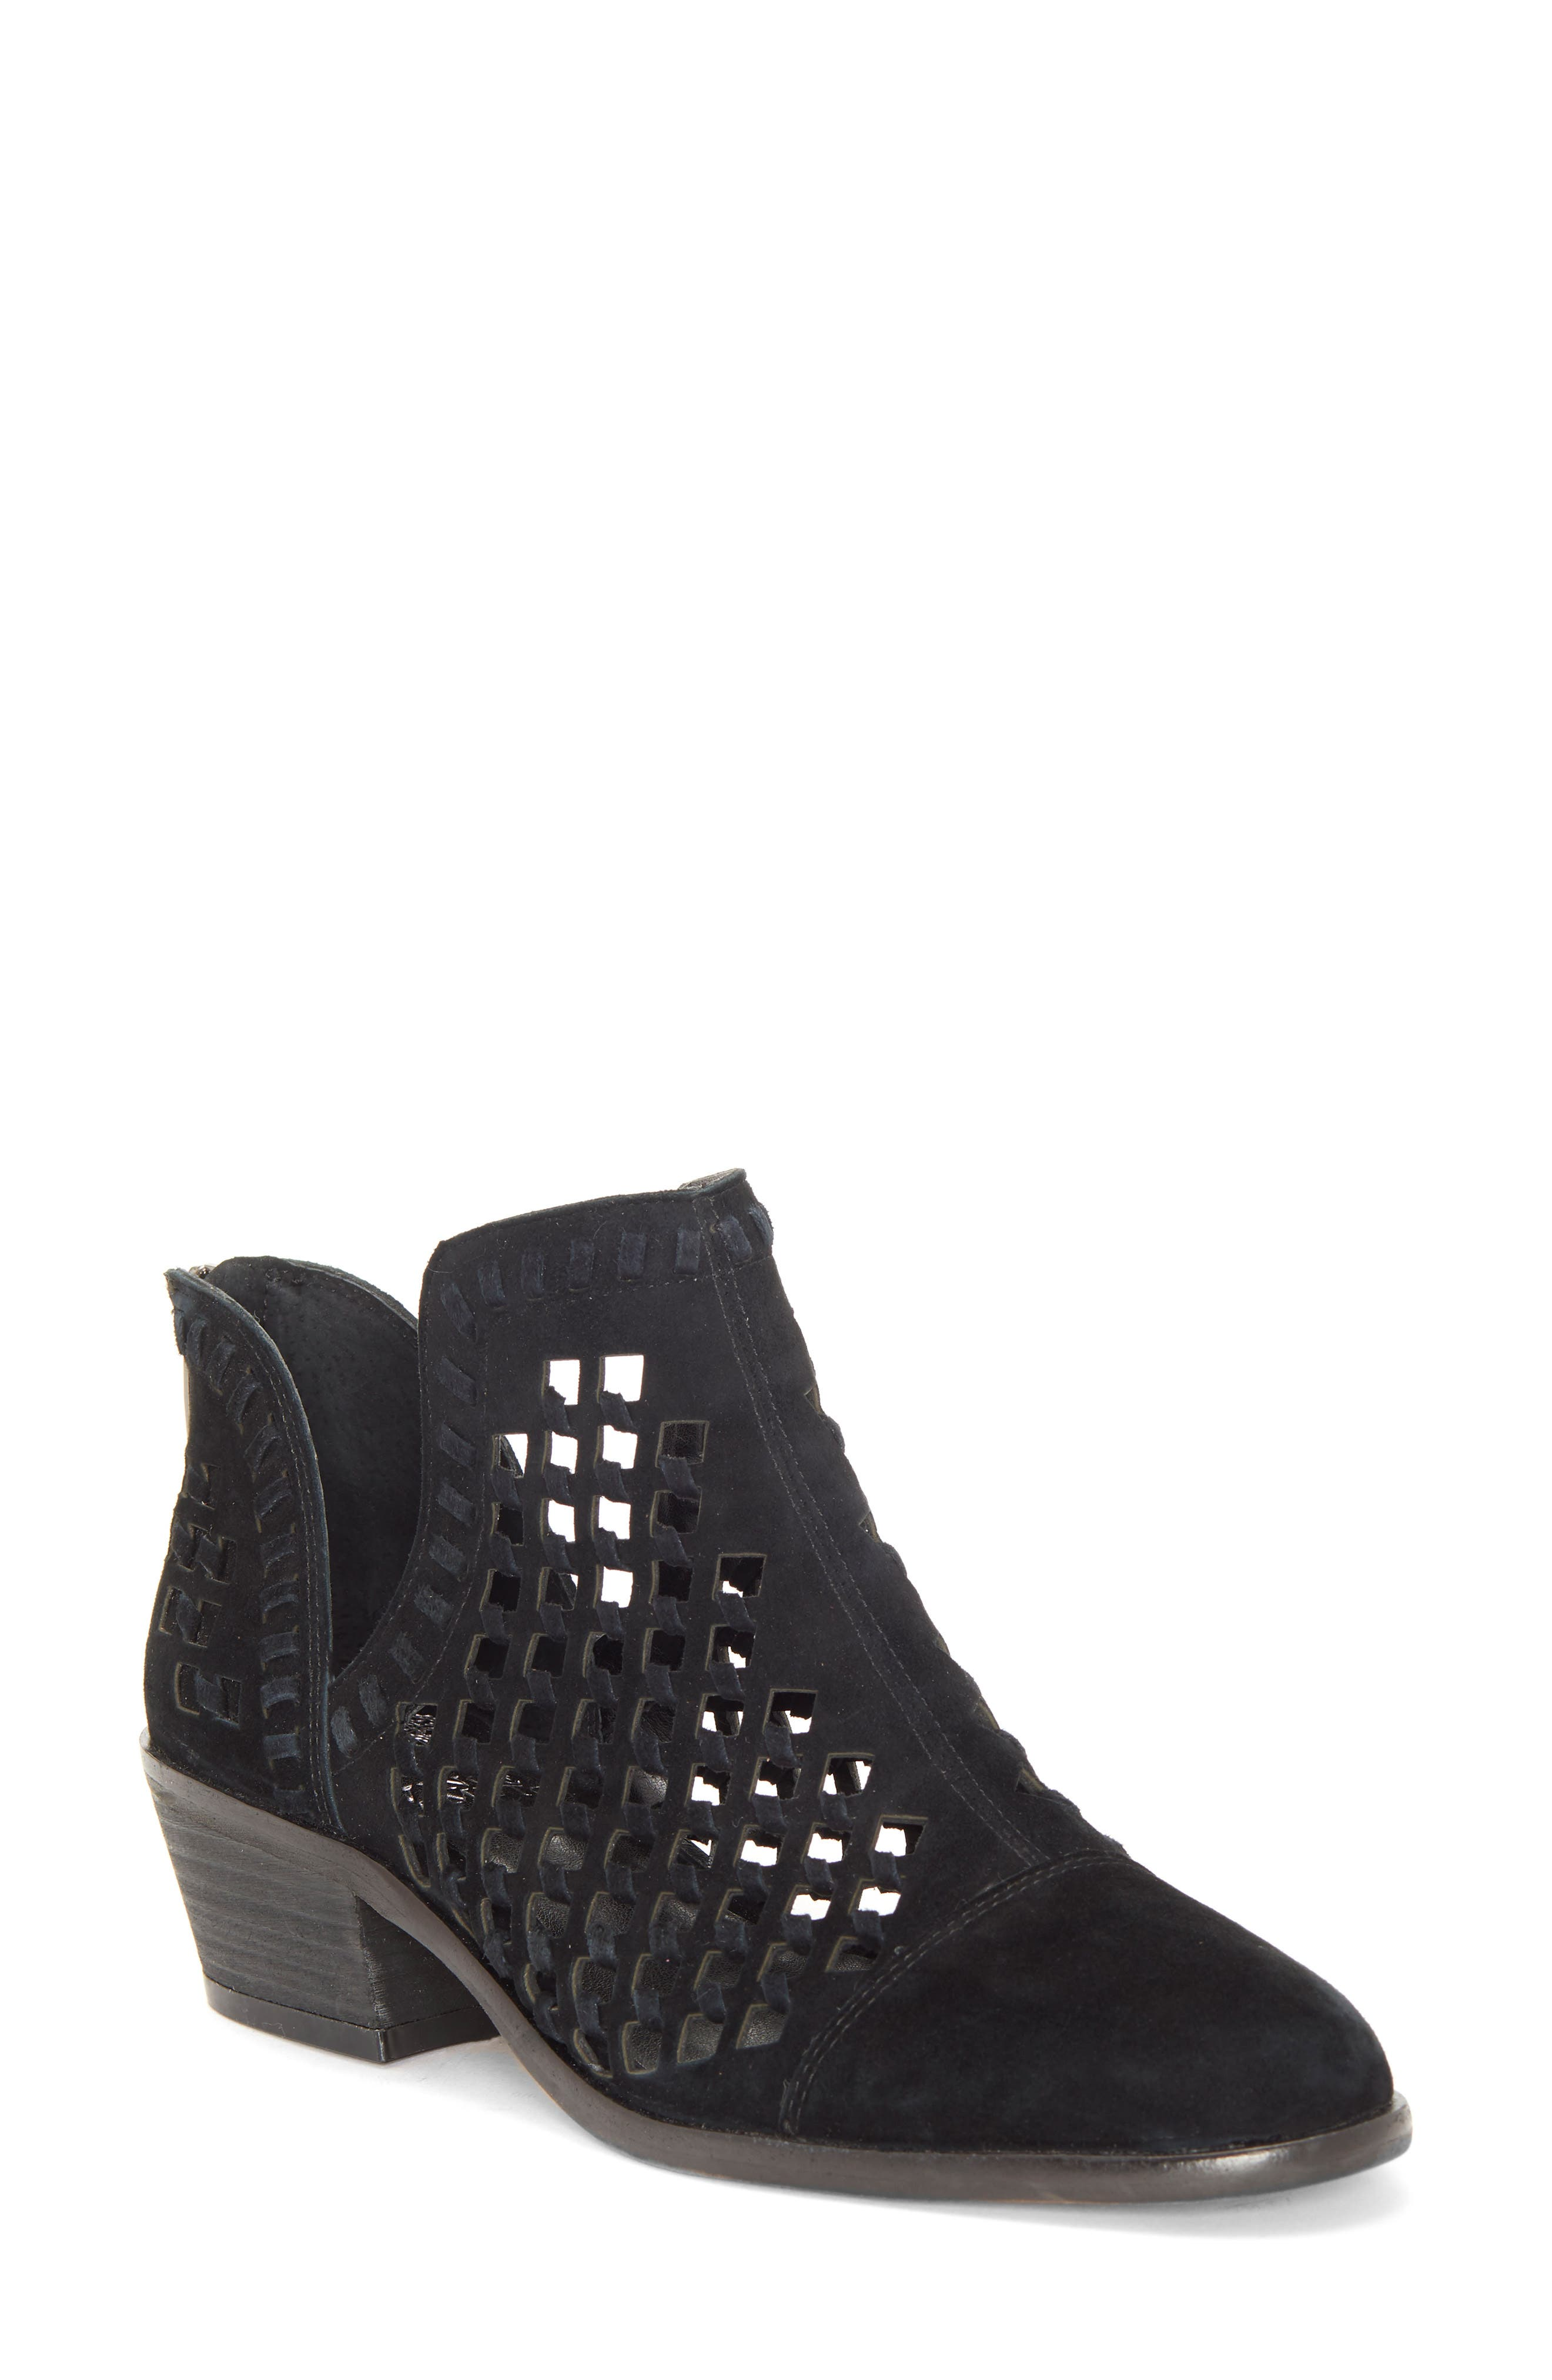 Phortiena Boot,                         Main,                         color, BLACK LEATHER